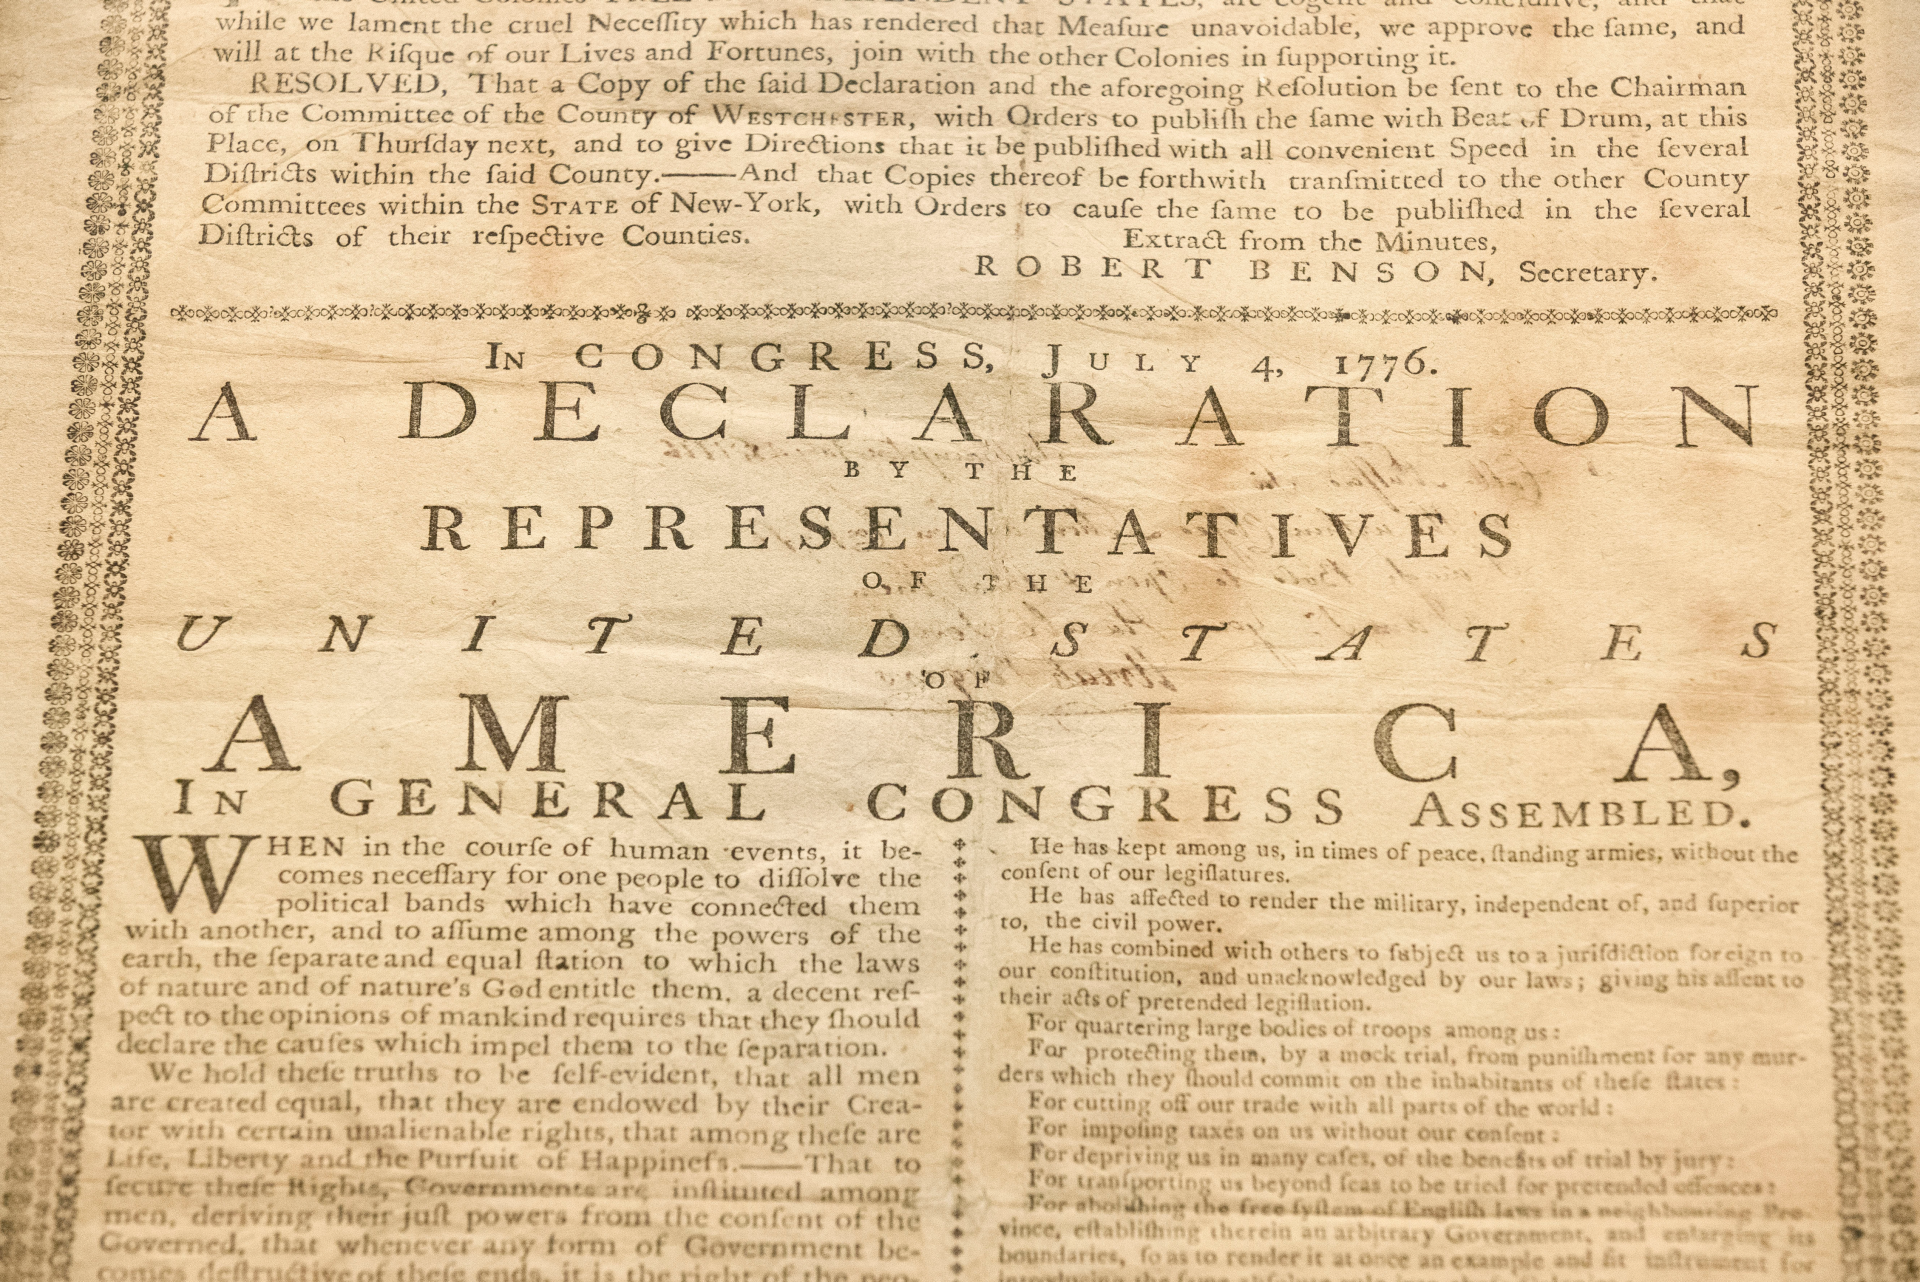 Judge Andrew Napolitano: Declaration of Independence was based on these revolutionary ideas